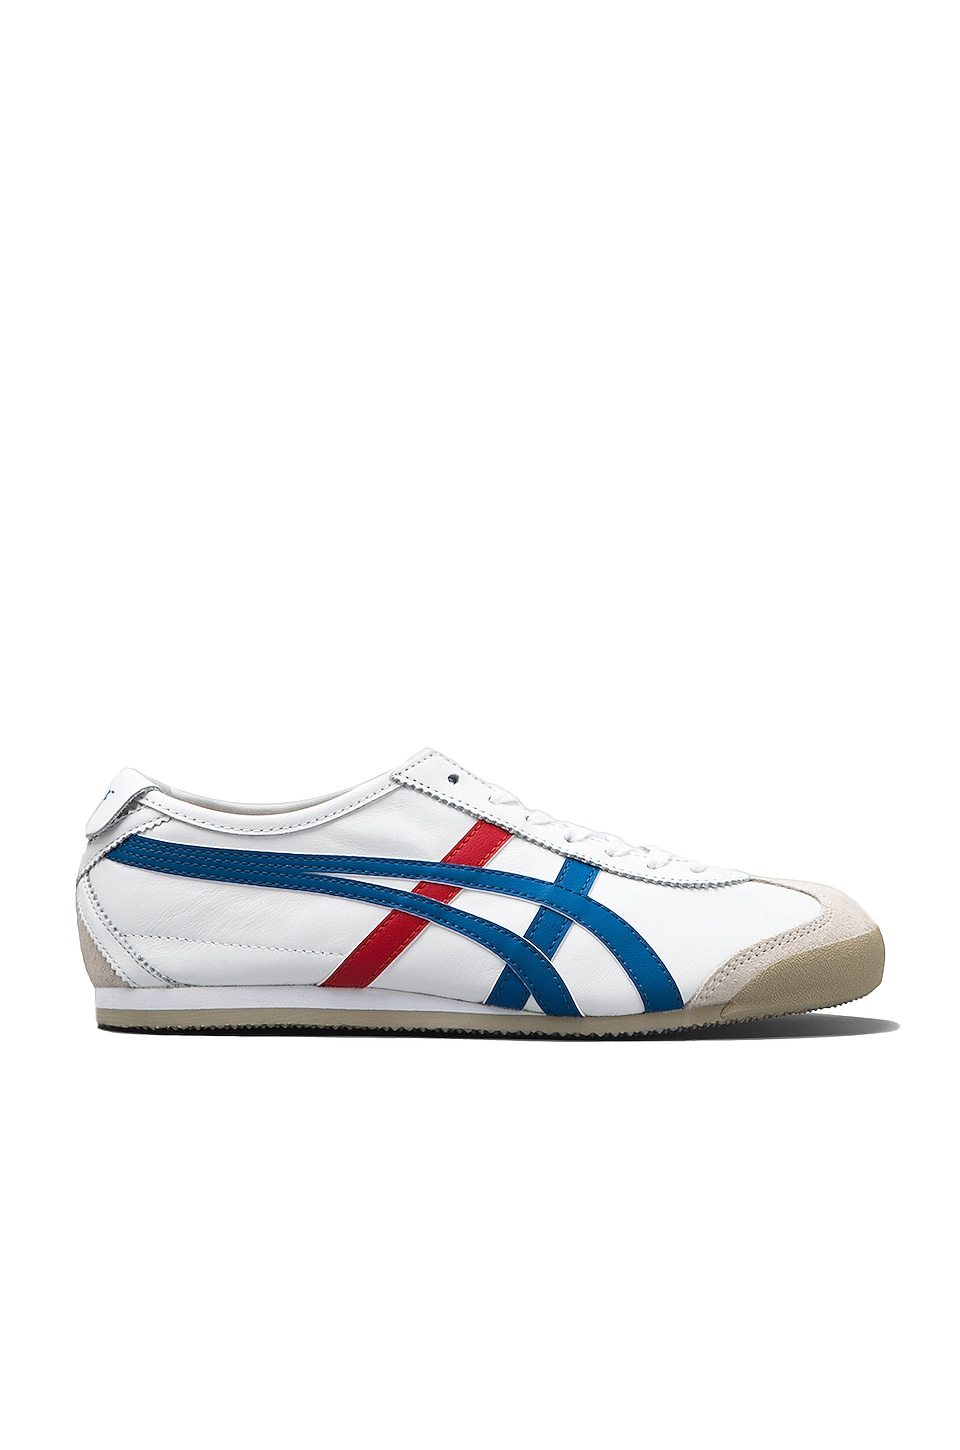 onitsuka tiger mexico 66 shoes online oficial world peru